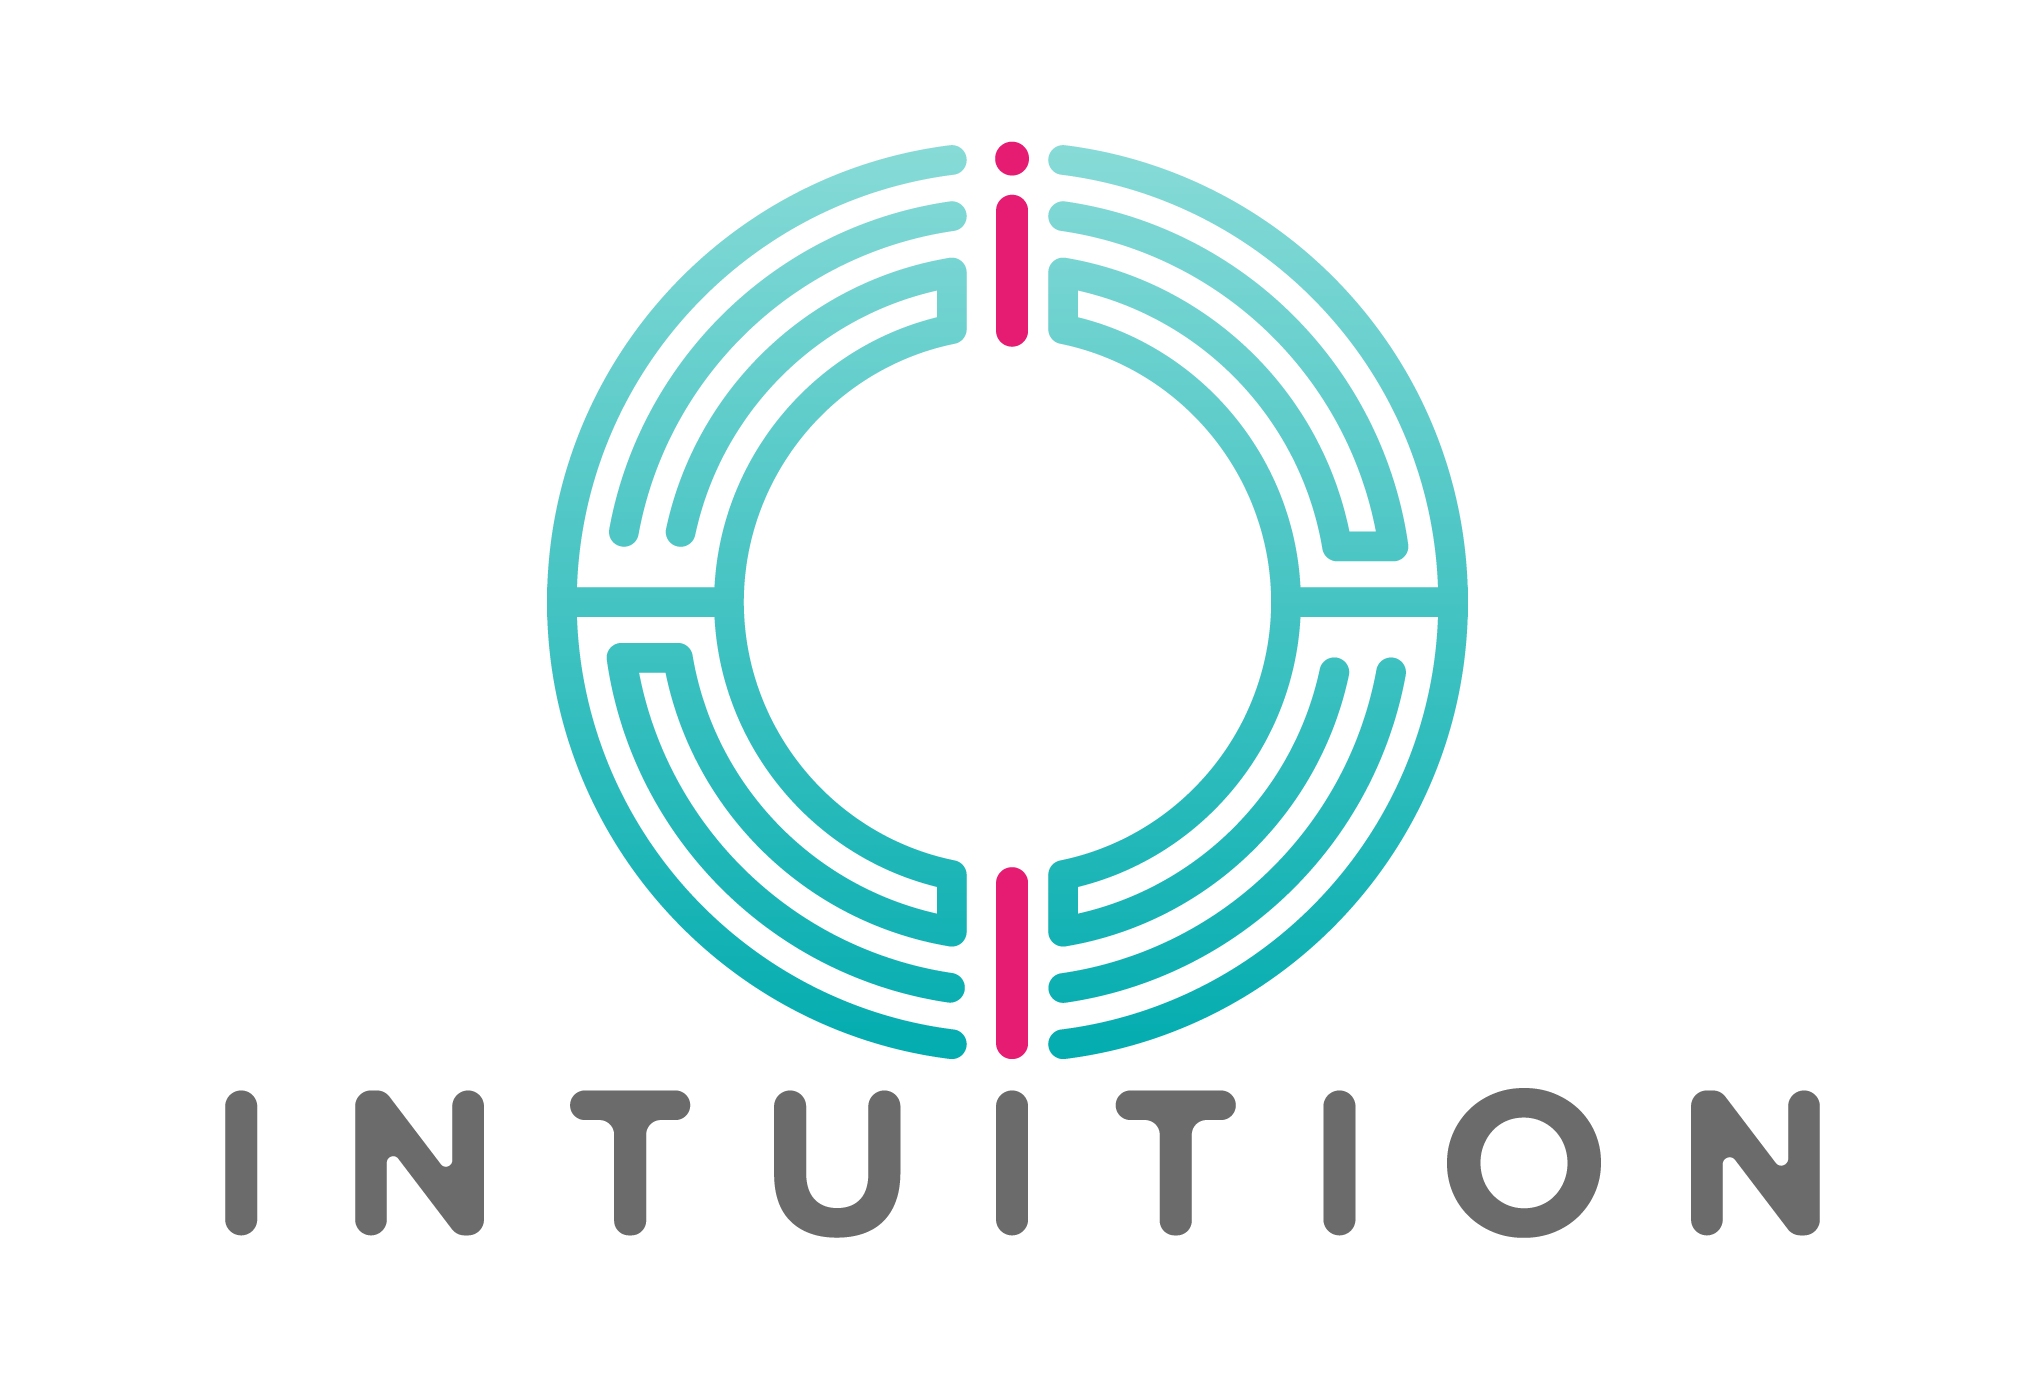 wp-content/uploads/img-loghi12/Intuition_logo.png